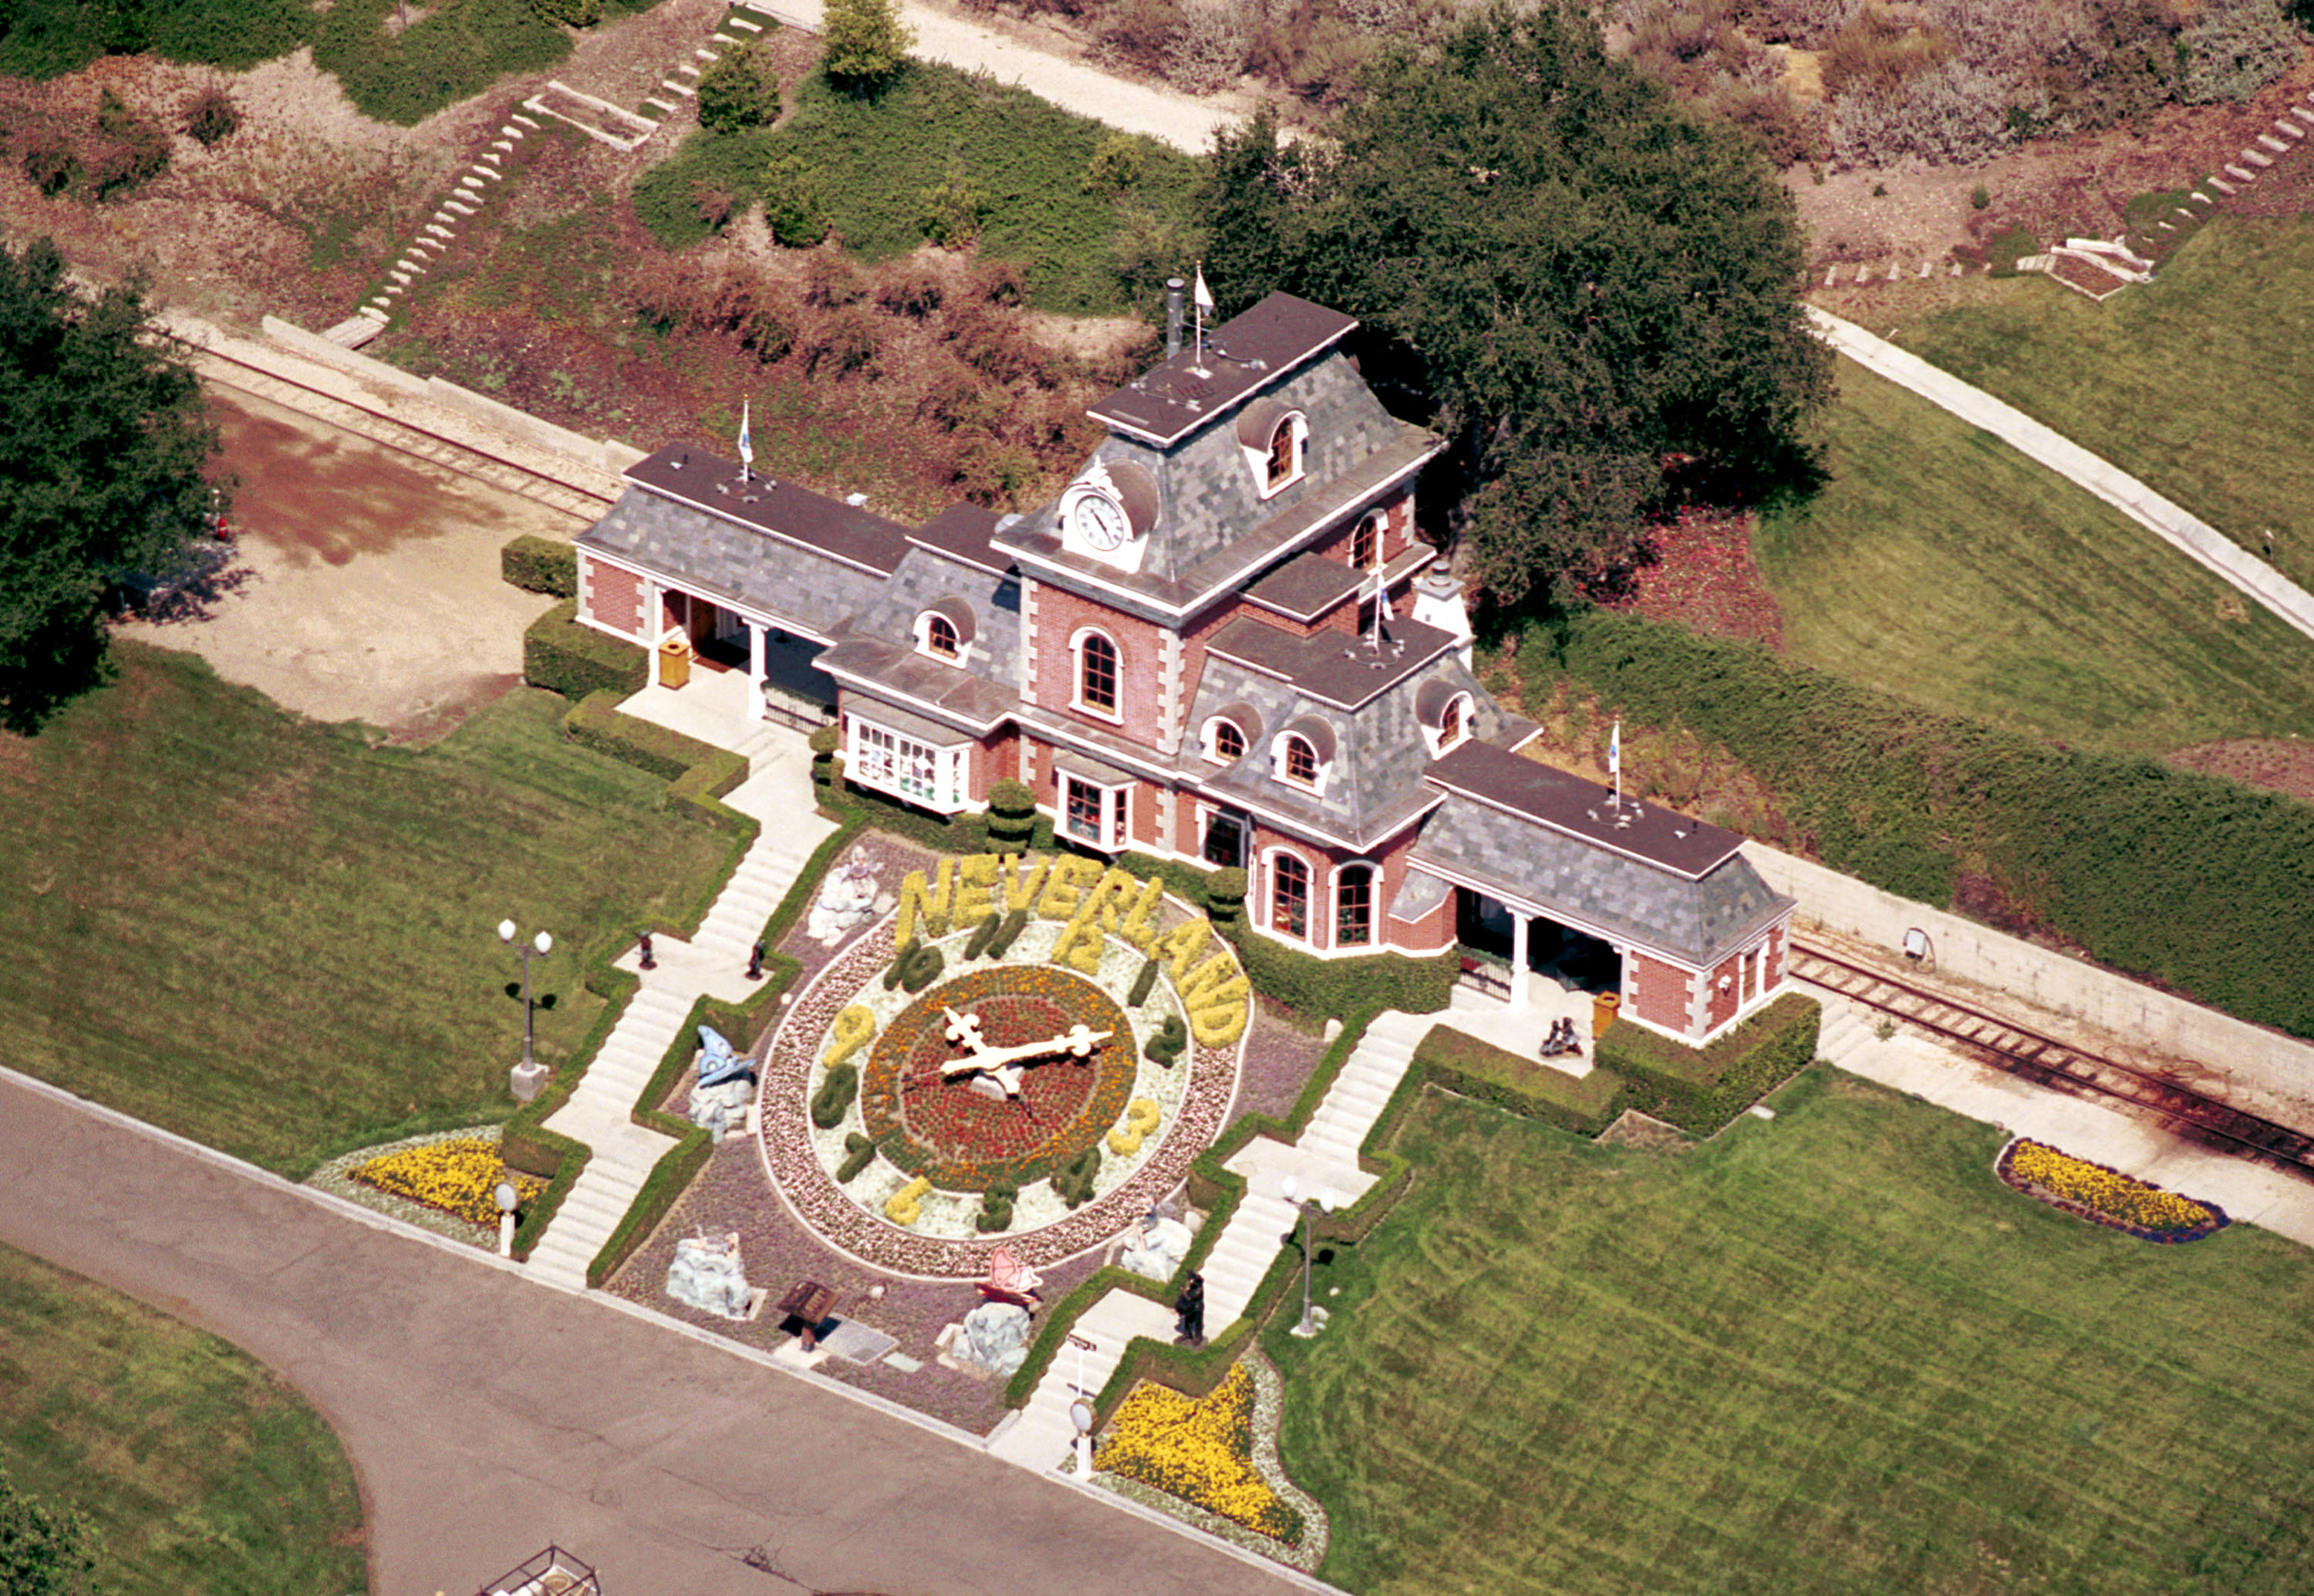 Michael Jackson's Neverland Ranch is shown in this picture.